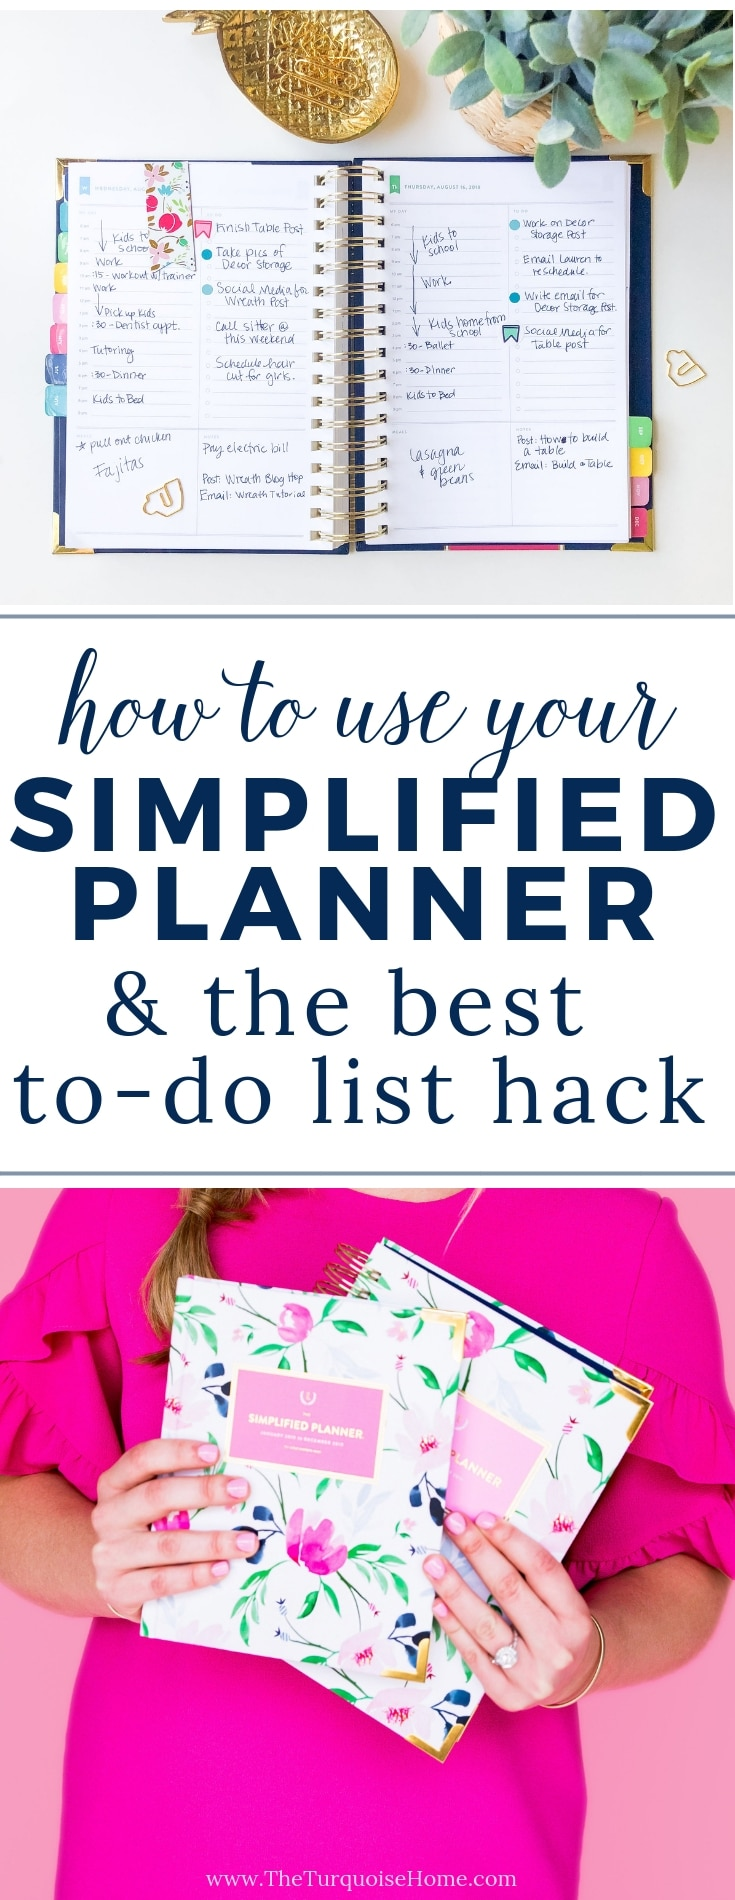 photo relating to Simplified Planner referred to as How I Seek the services of My Emily Ley Simplified Planner and Favourite Hack